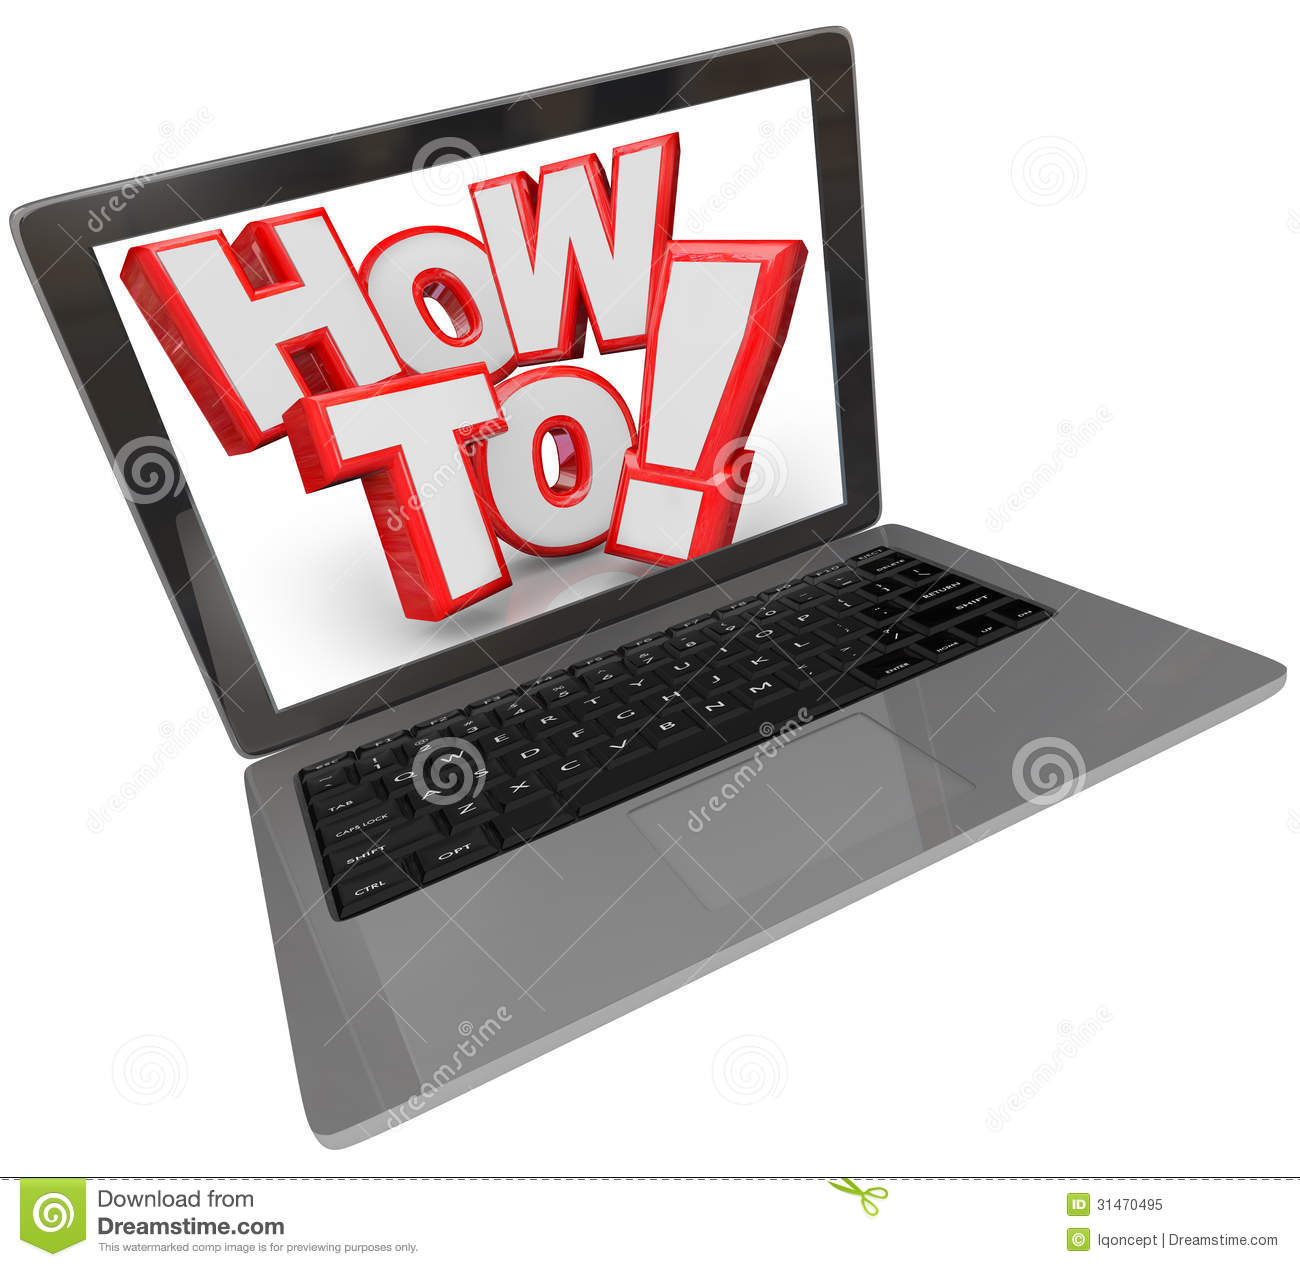 how to change laptop time